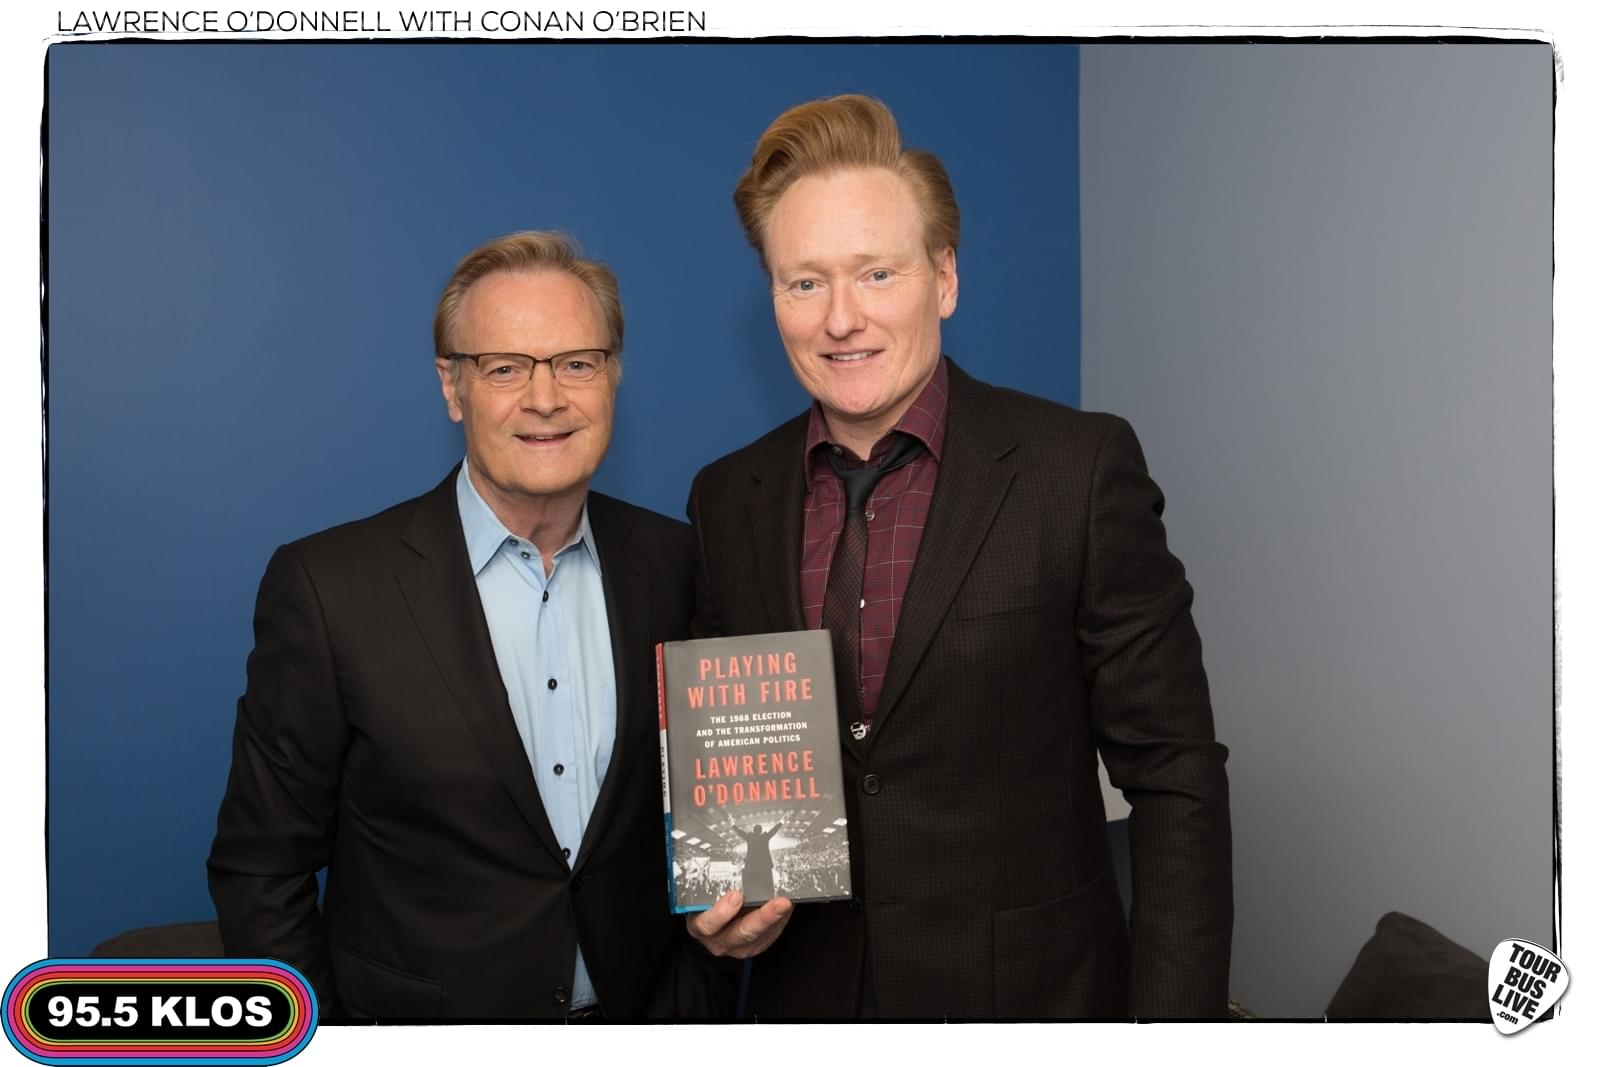 Lawrence-Odonnell-Conan-Obrien Photos